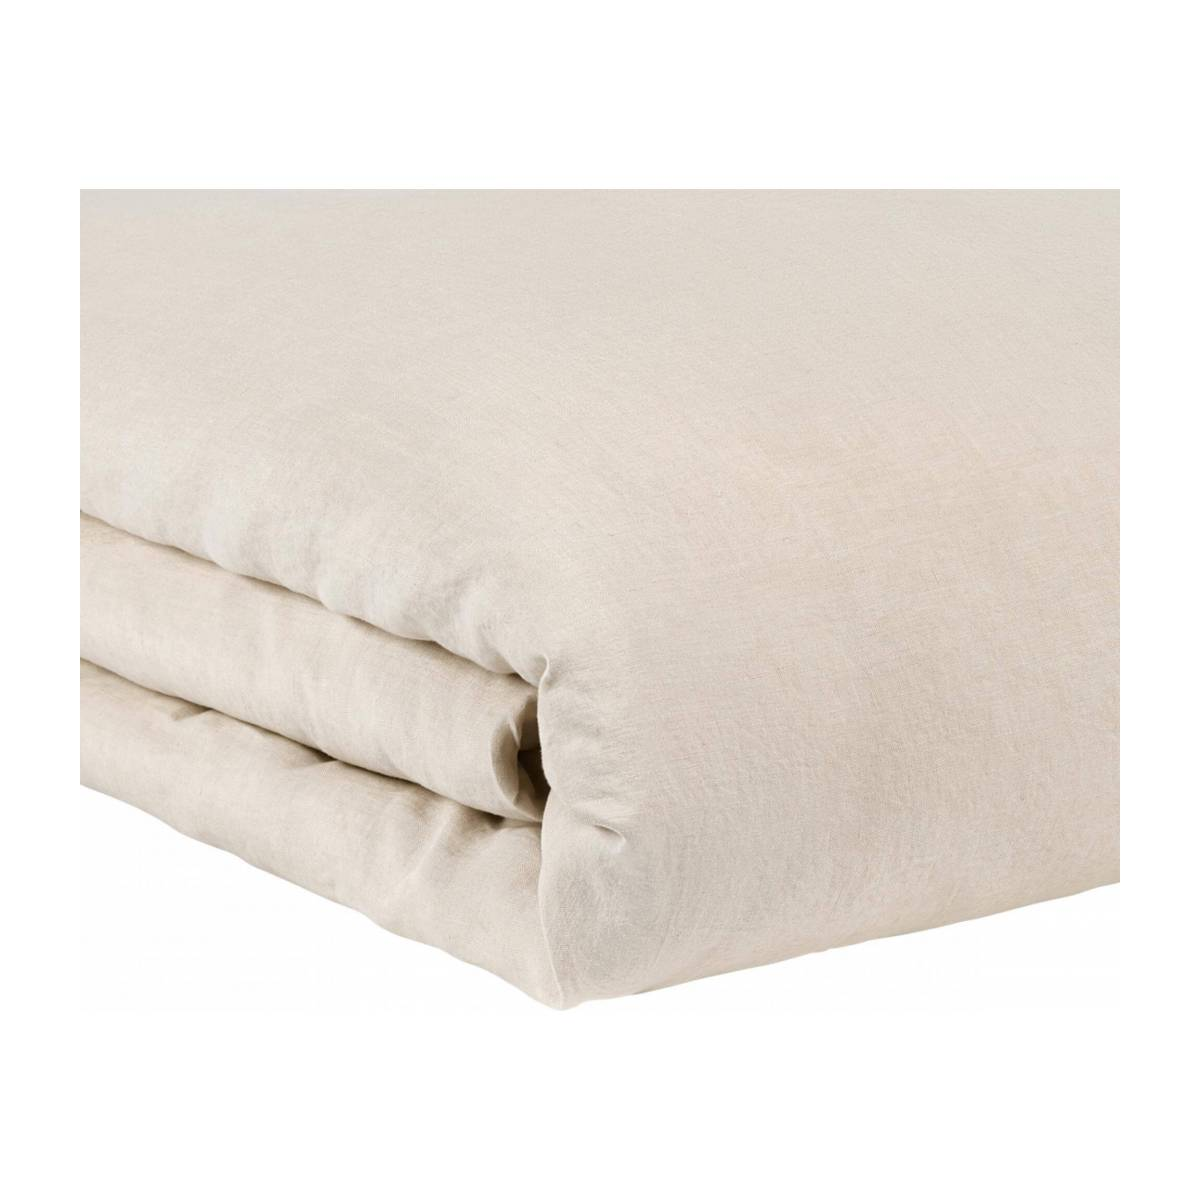 Duvet cover made of flax 200x200cm, natural n°2